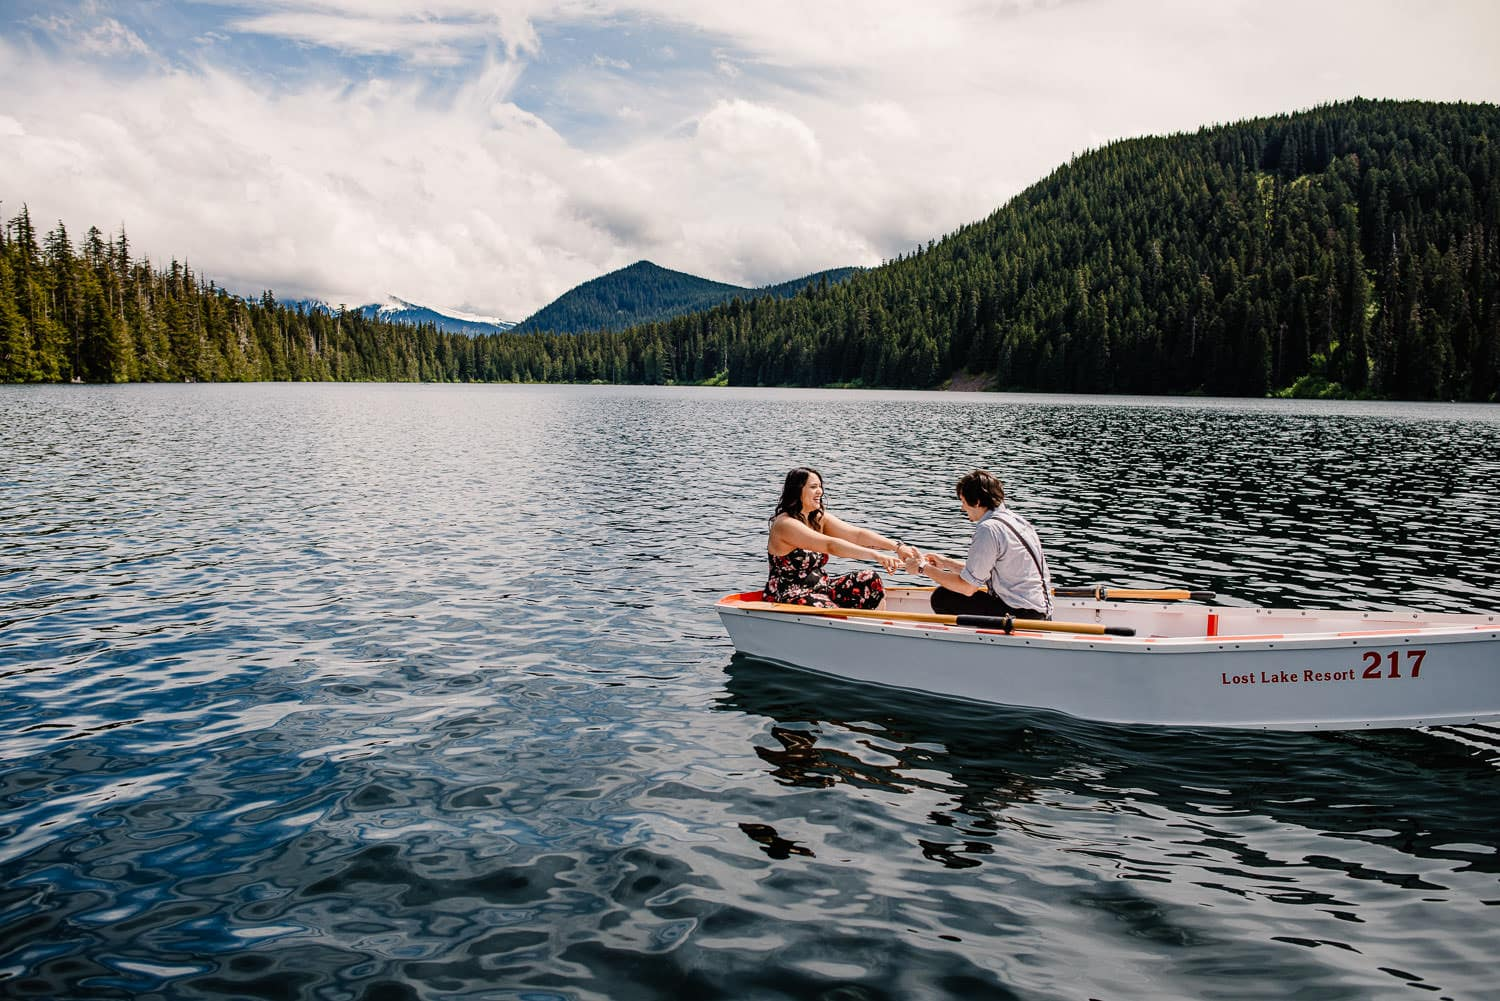 Couple in a boat rowing on an alpine lake